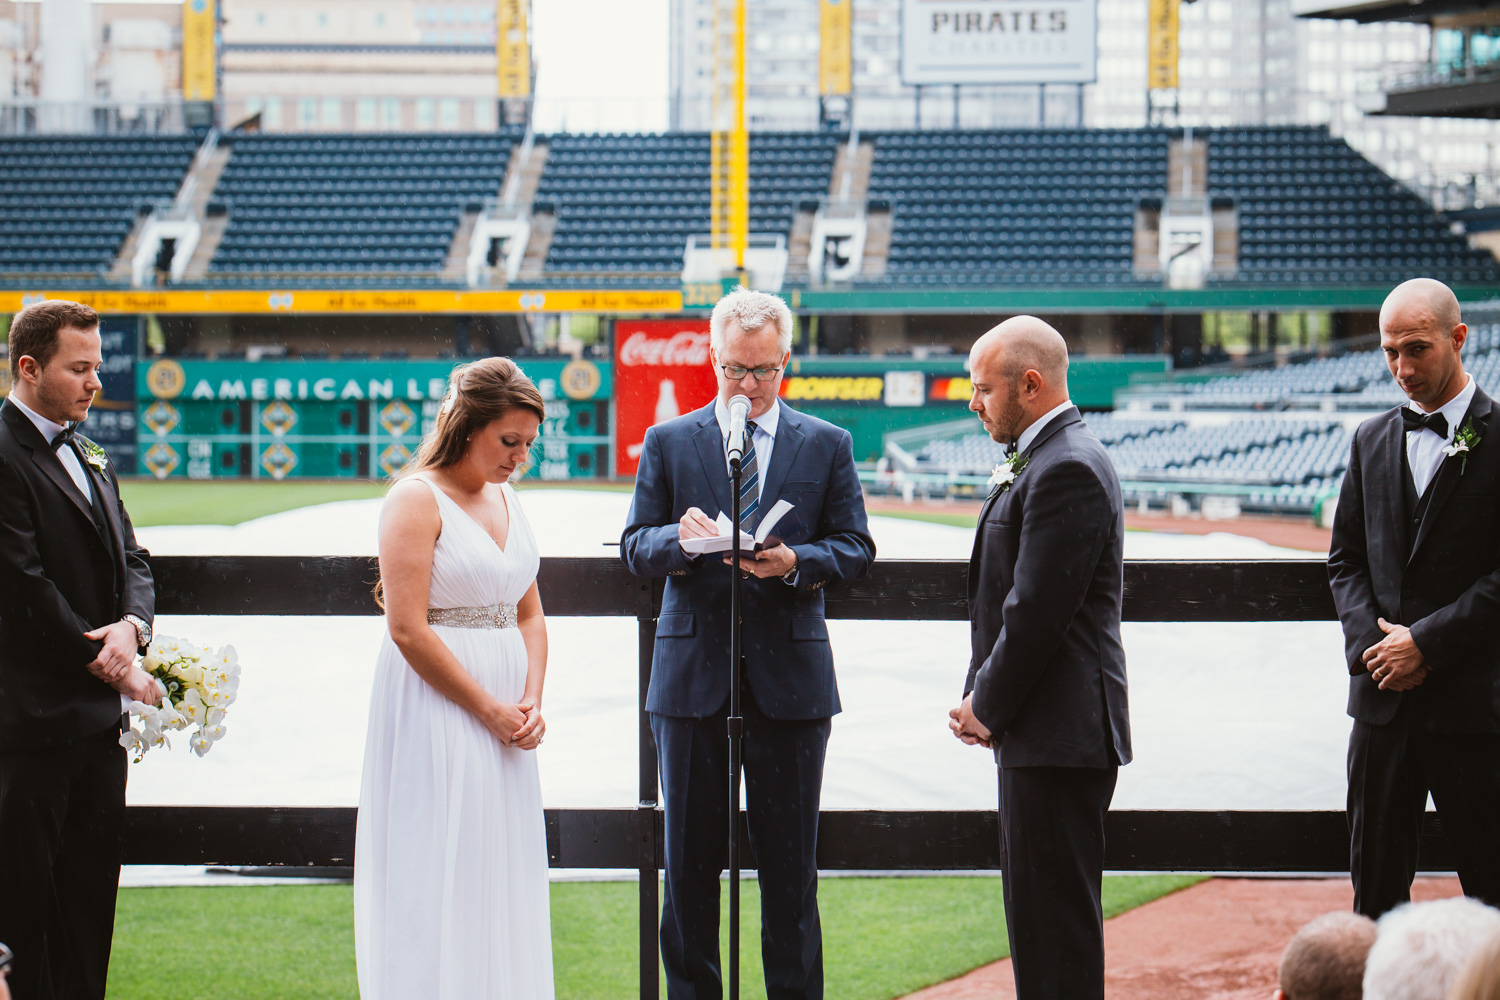 wedding-at-pnc-park-convention-center-downtown-pittsburgh-man-nguyen-photography-4